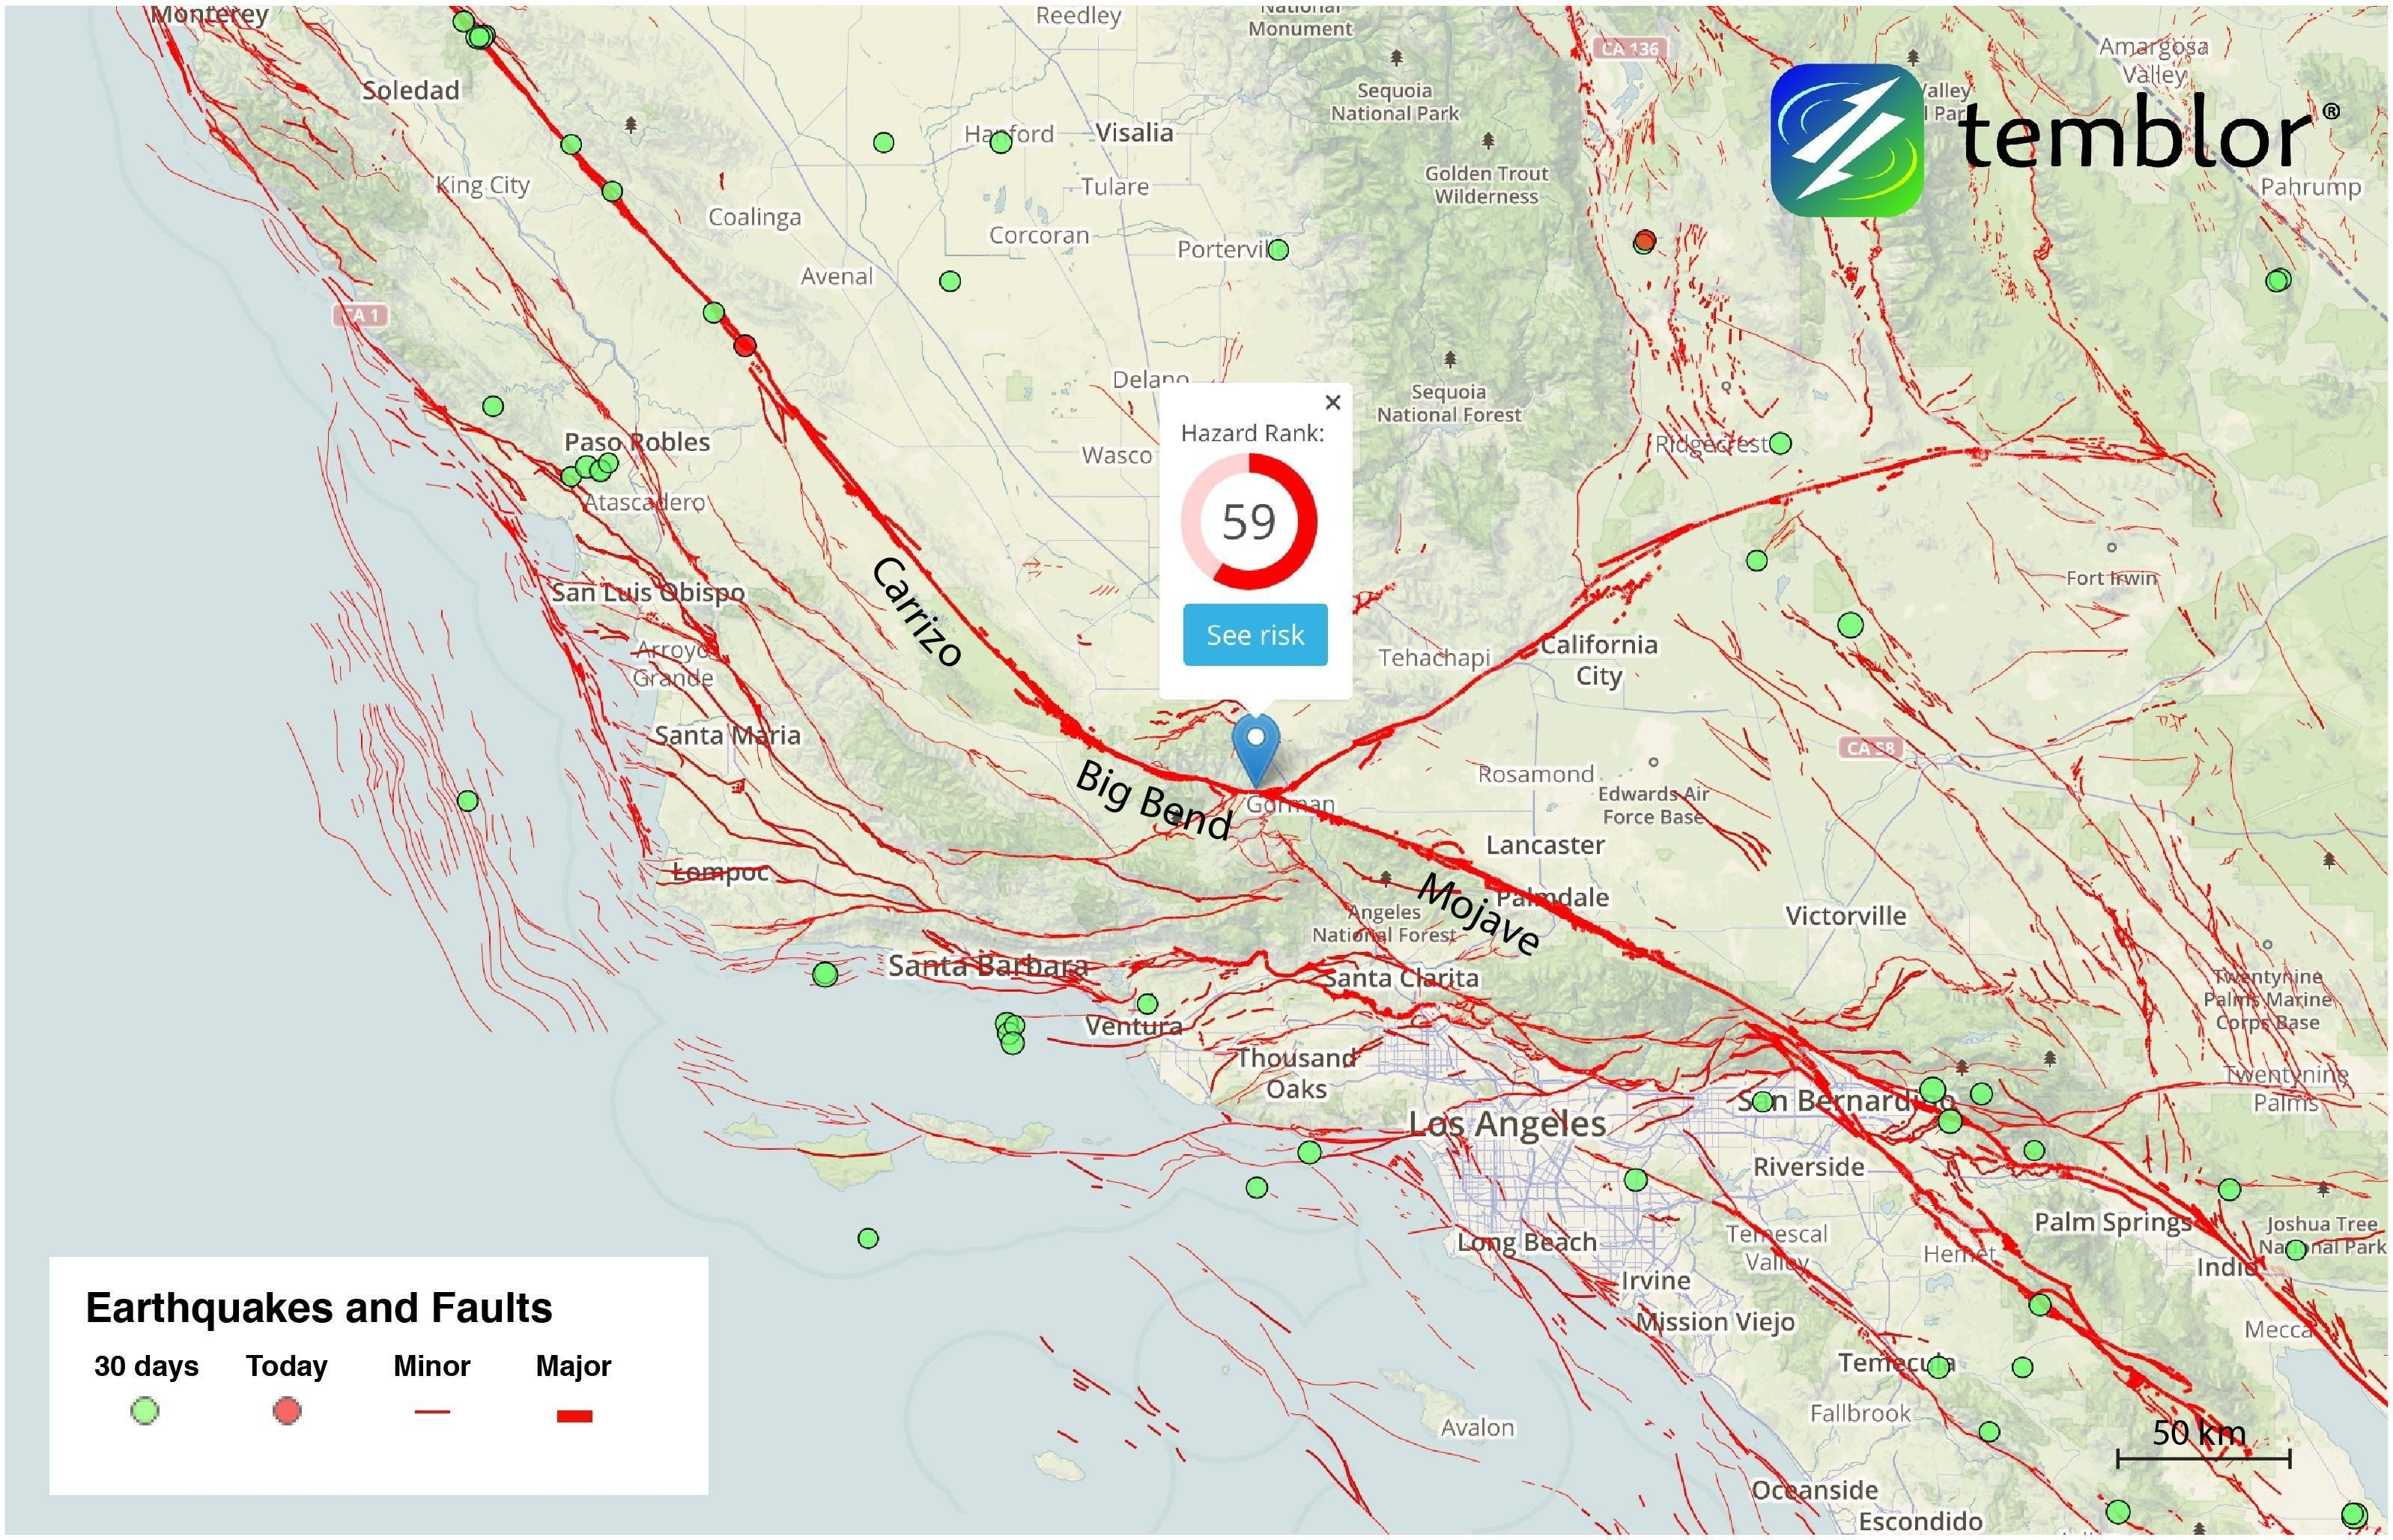 Us Map Earthquake Fault Lines Fault Lines Beautiful Graph Fault - California Fault Lines Map